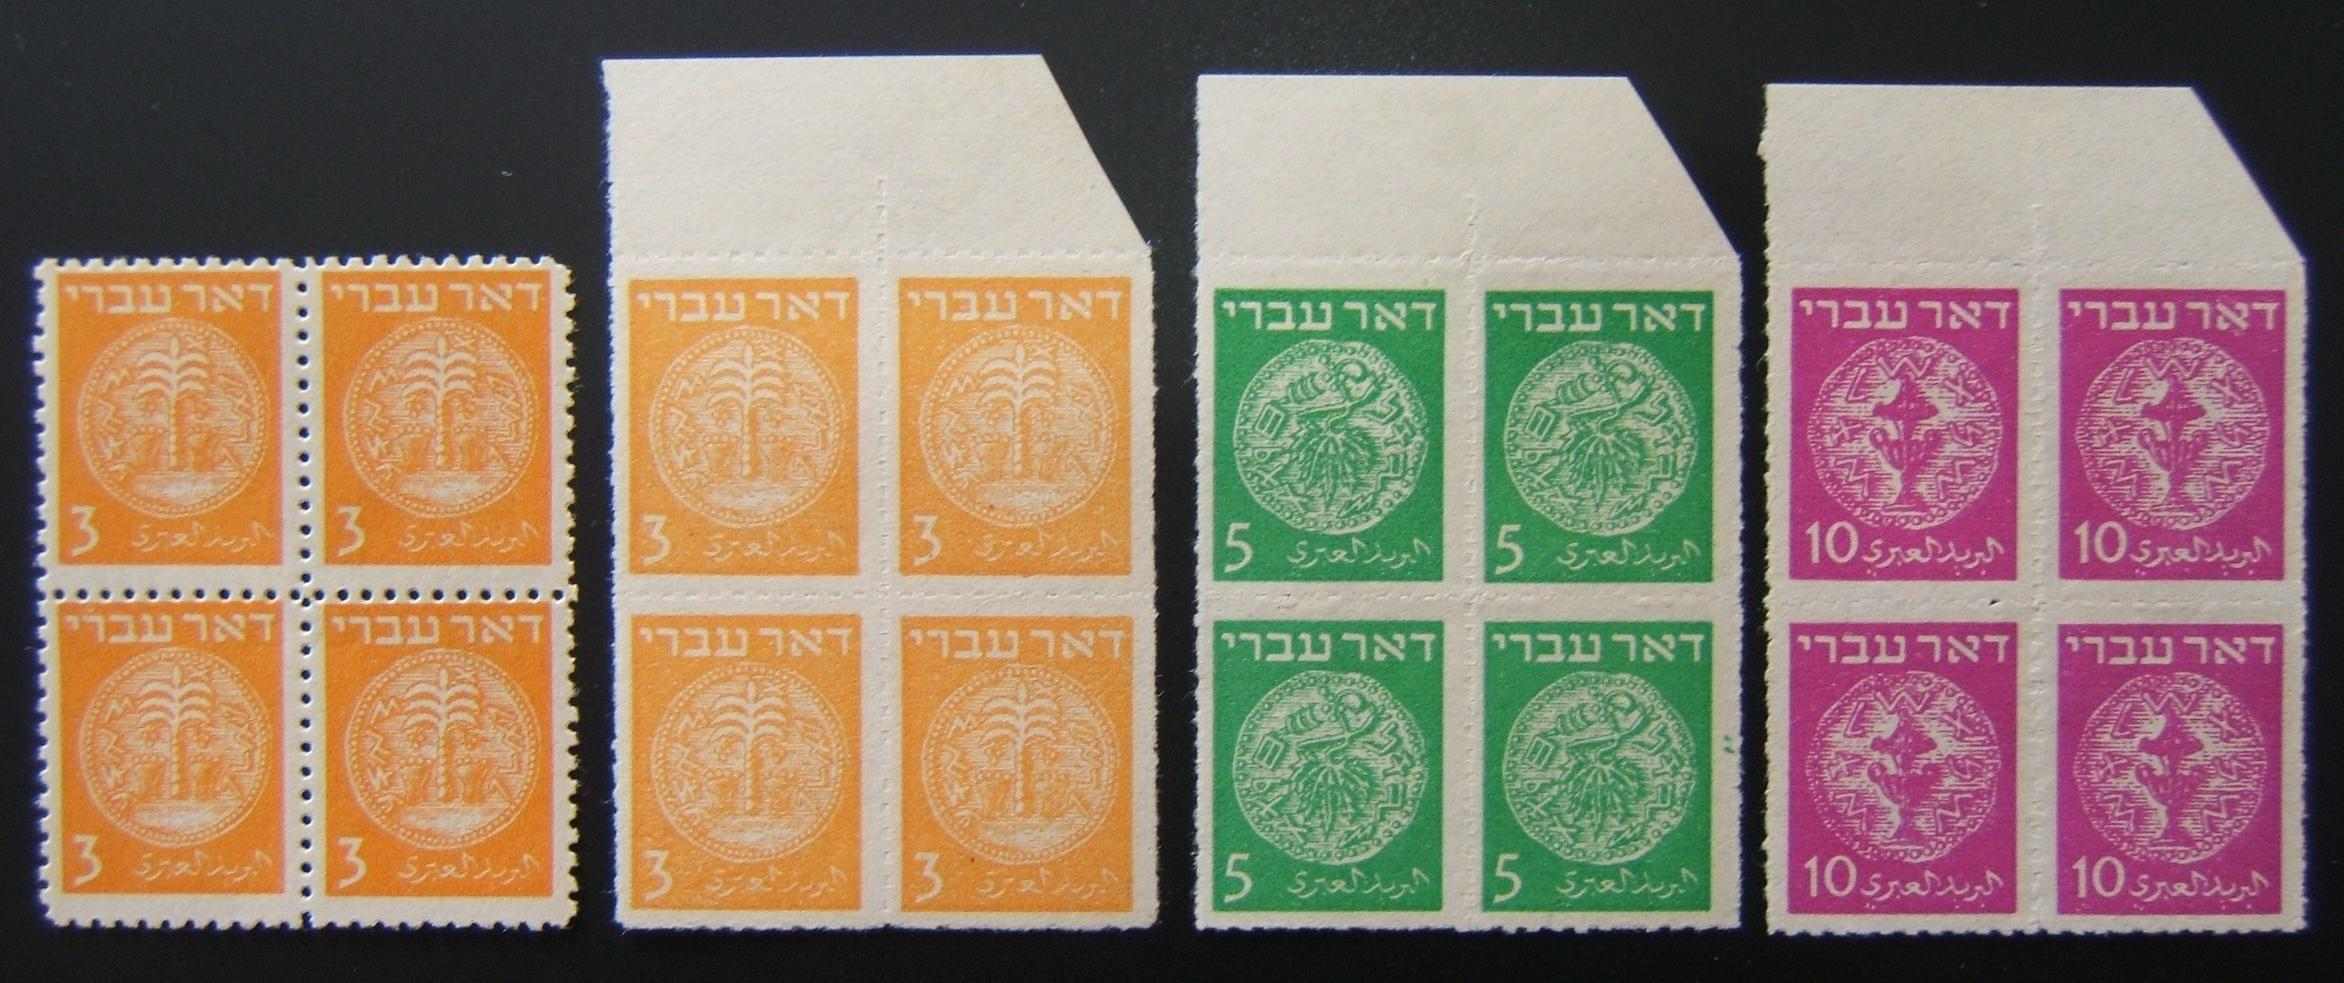 Doar Ivri x4 low values blocks: x3 rouletted (3-10m) + 3m perf 11x11; MNH